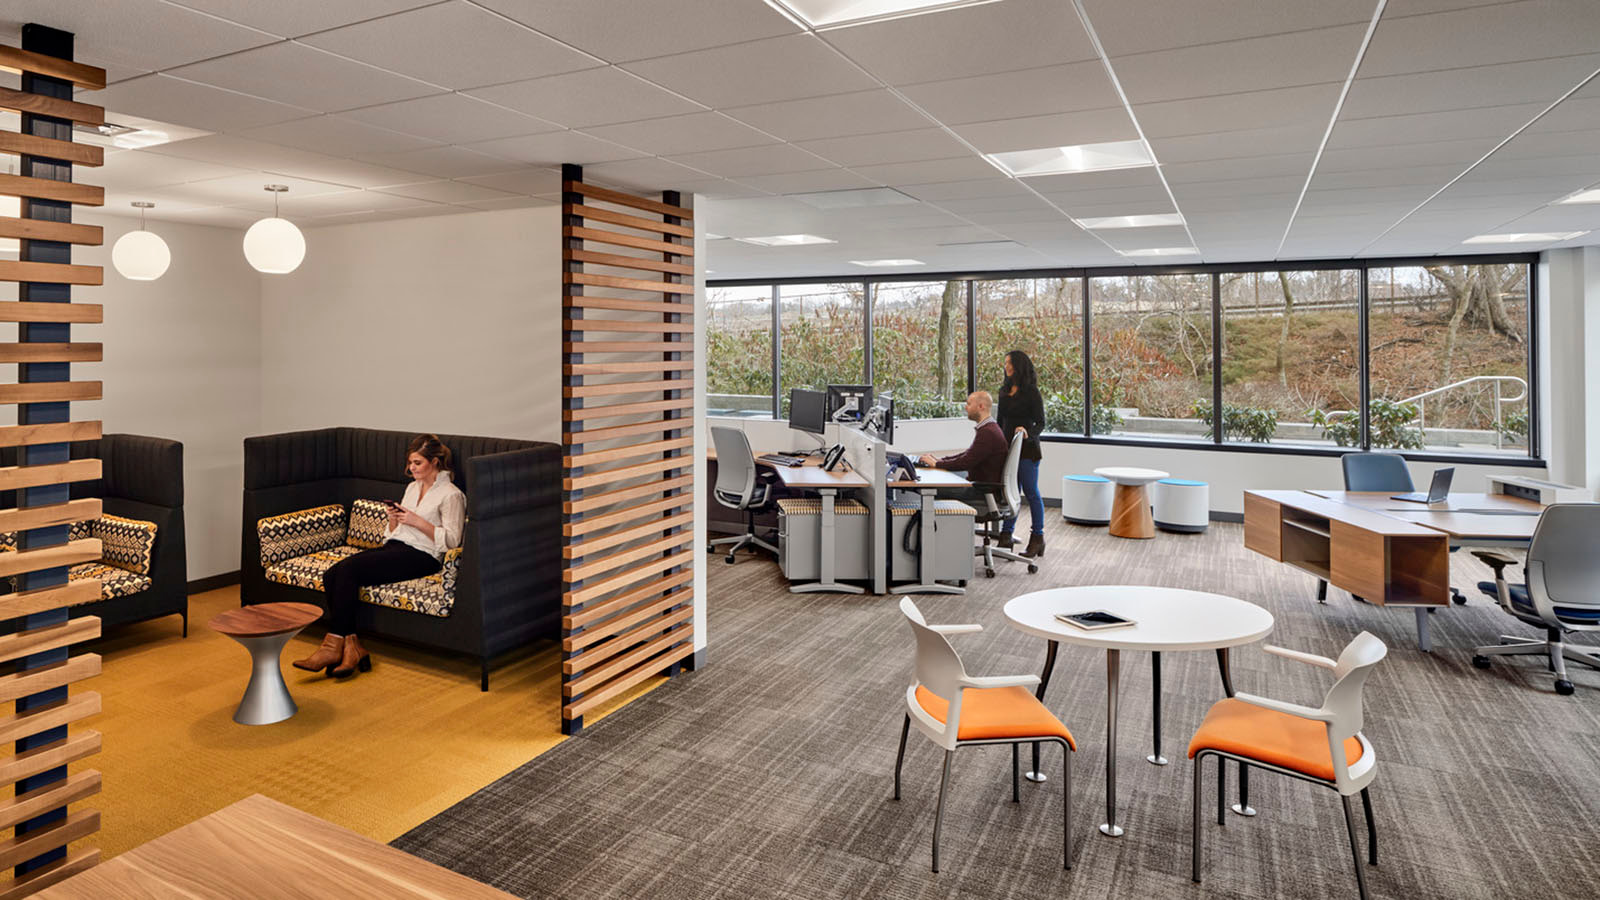 Sun Life Financial huddle area with slatted walls